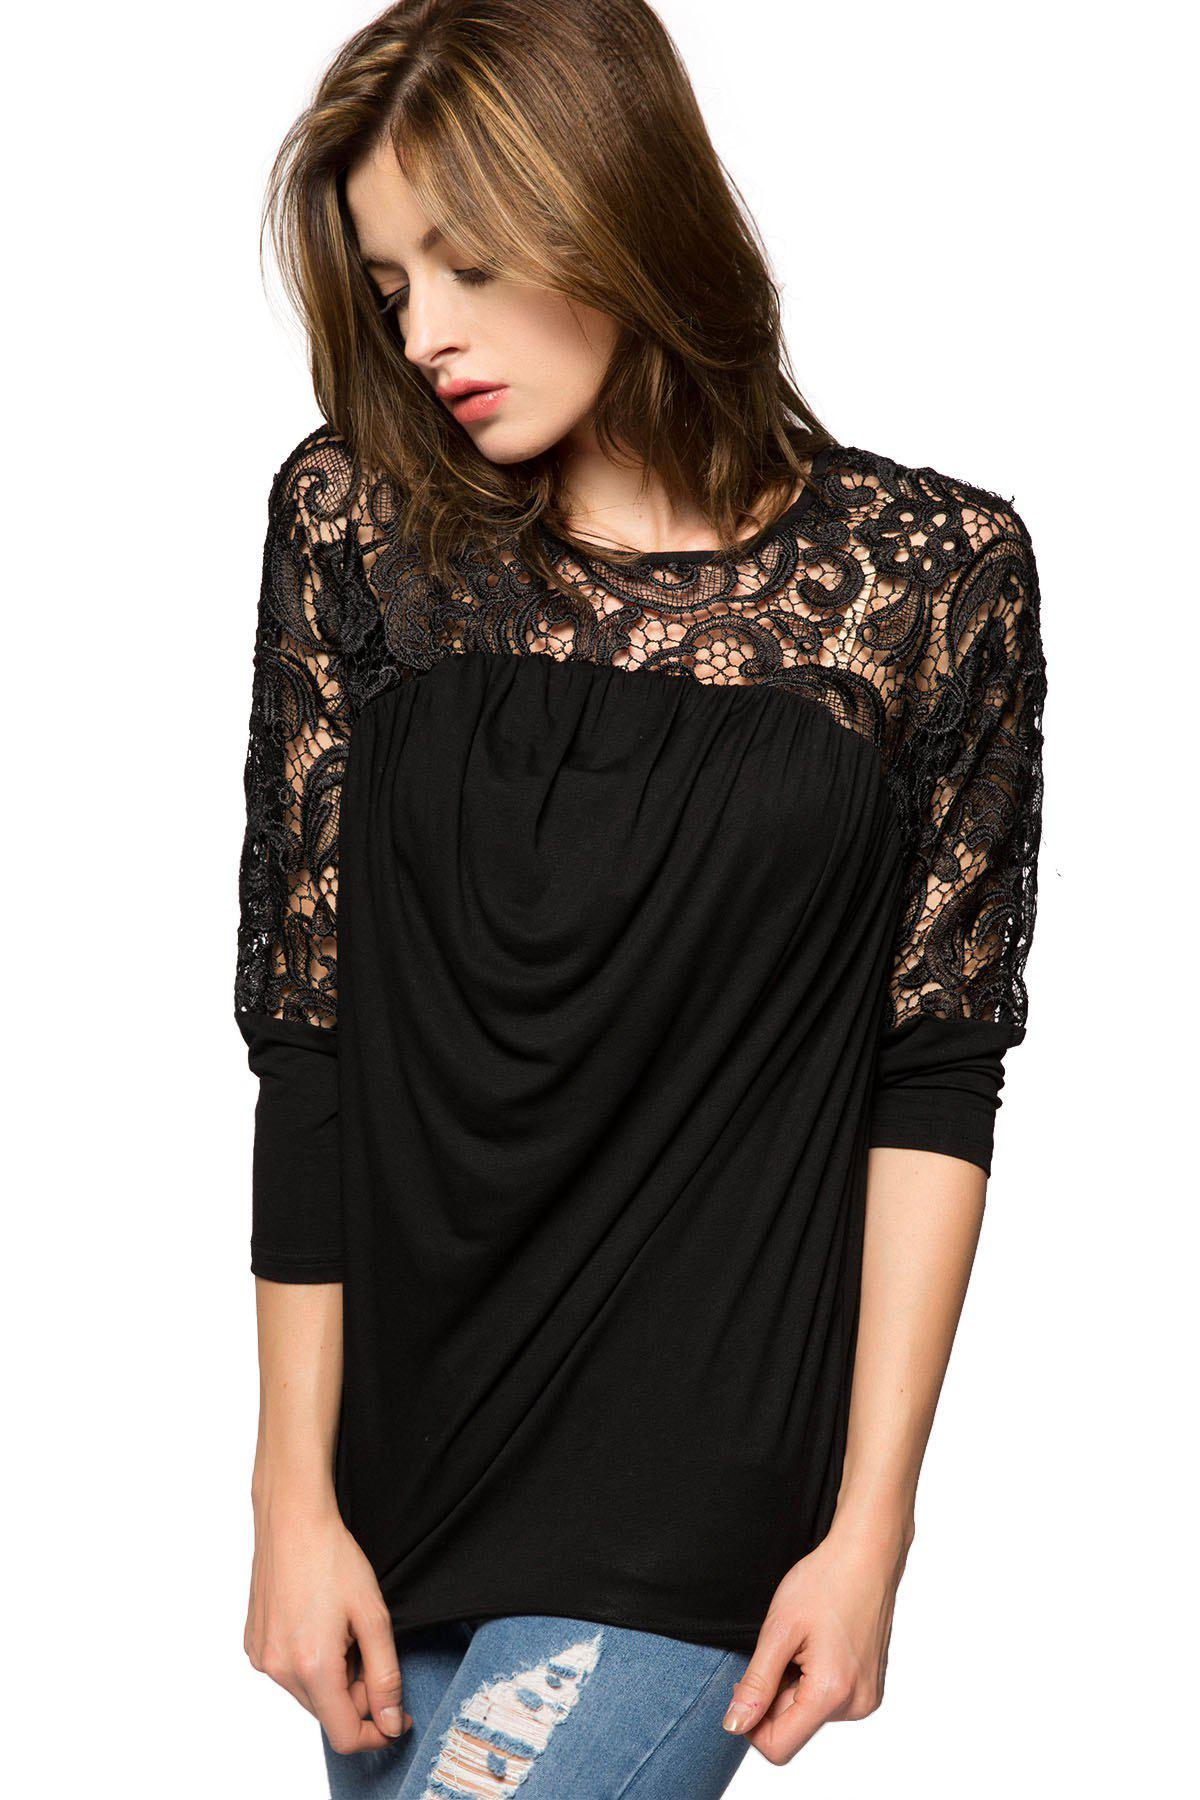 Fashionable Scoop Collar Nine-Minute Sleeve Lace Splicing Women's Blouse - BLACK S